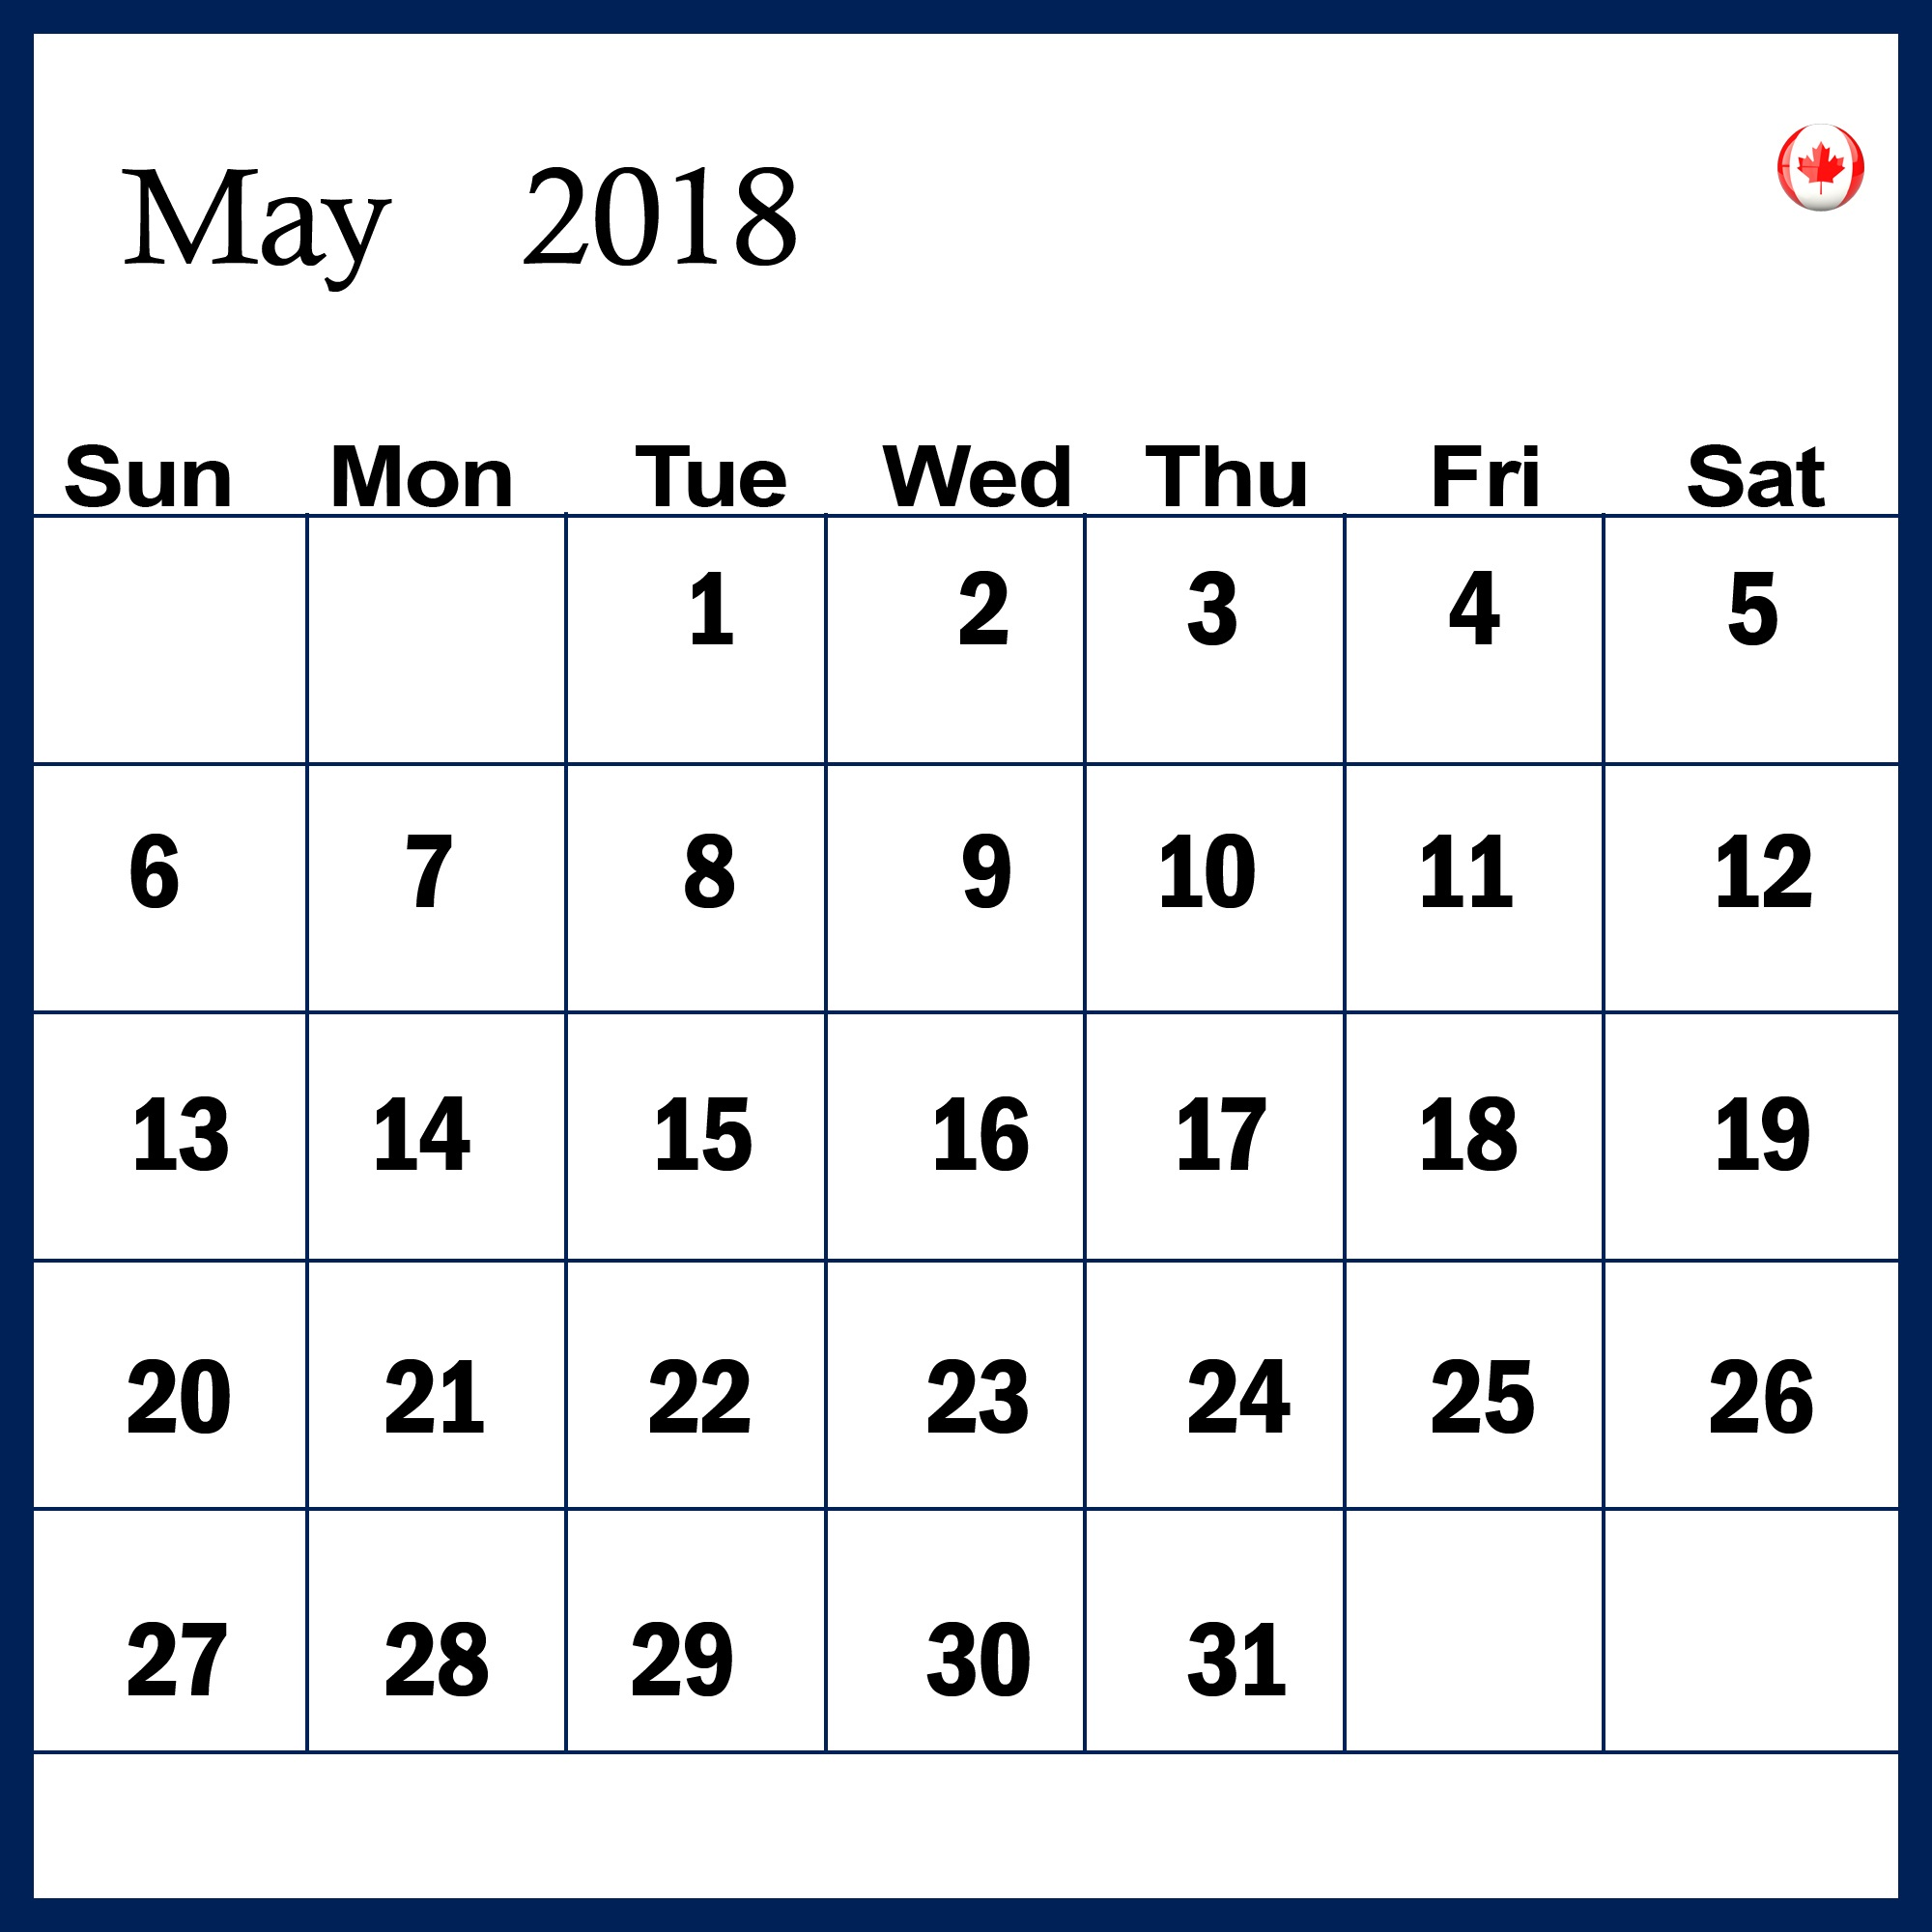 May 2018 Calendar in Landscape